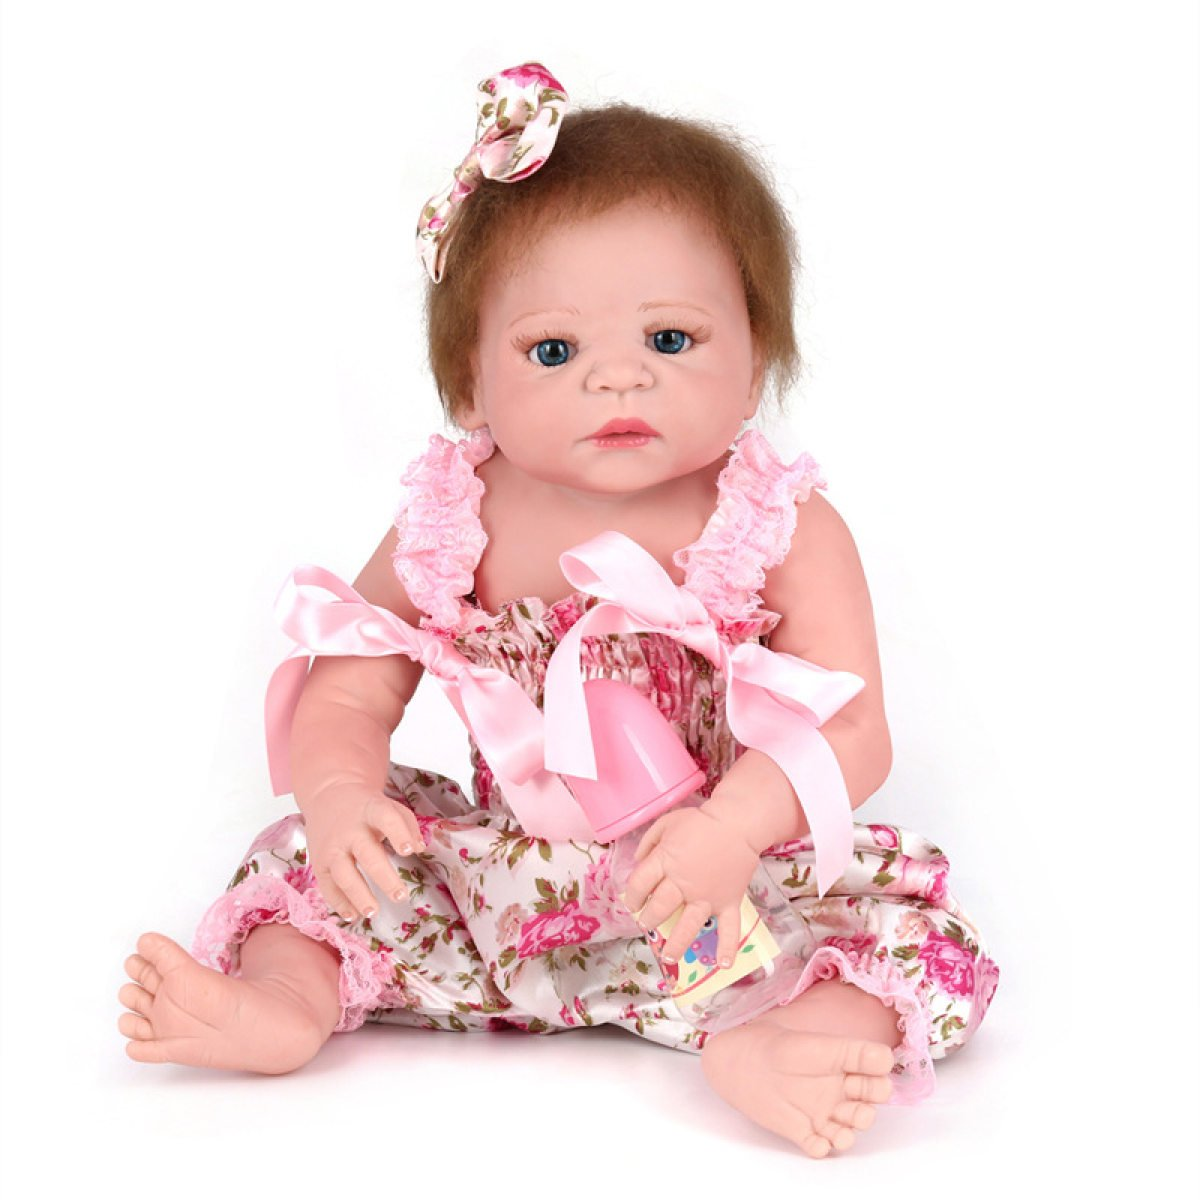 YIHANG Reborn Baby Dolls Handmade Lifelike Realistic Silicone Vinyl Baby Doll Soft Simulation 22 Inch 55 Cm Eyes Open Girl Favorite Gift Yihang Processing plant